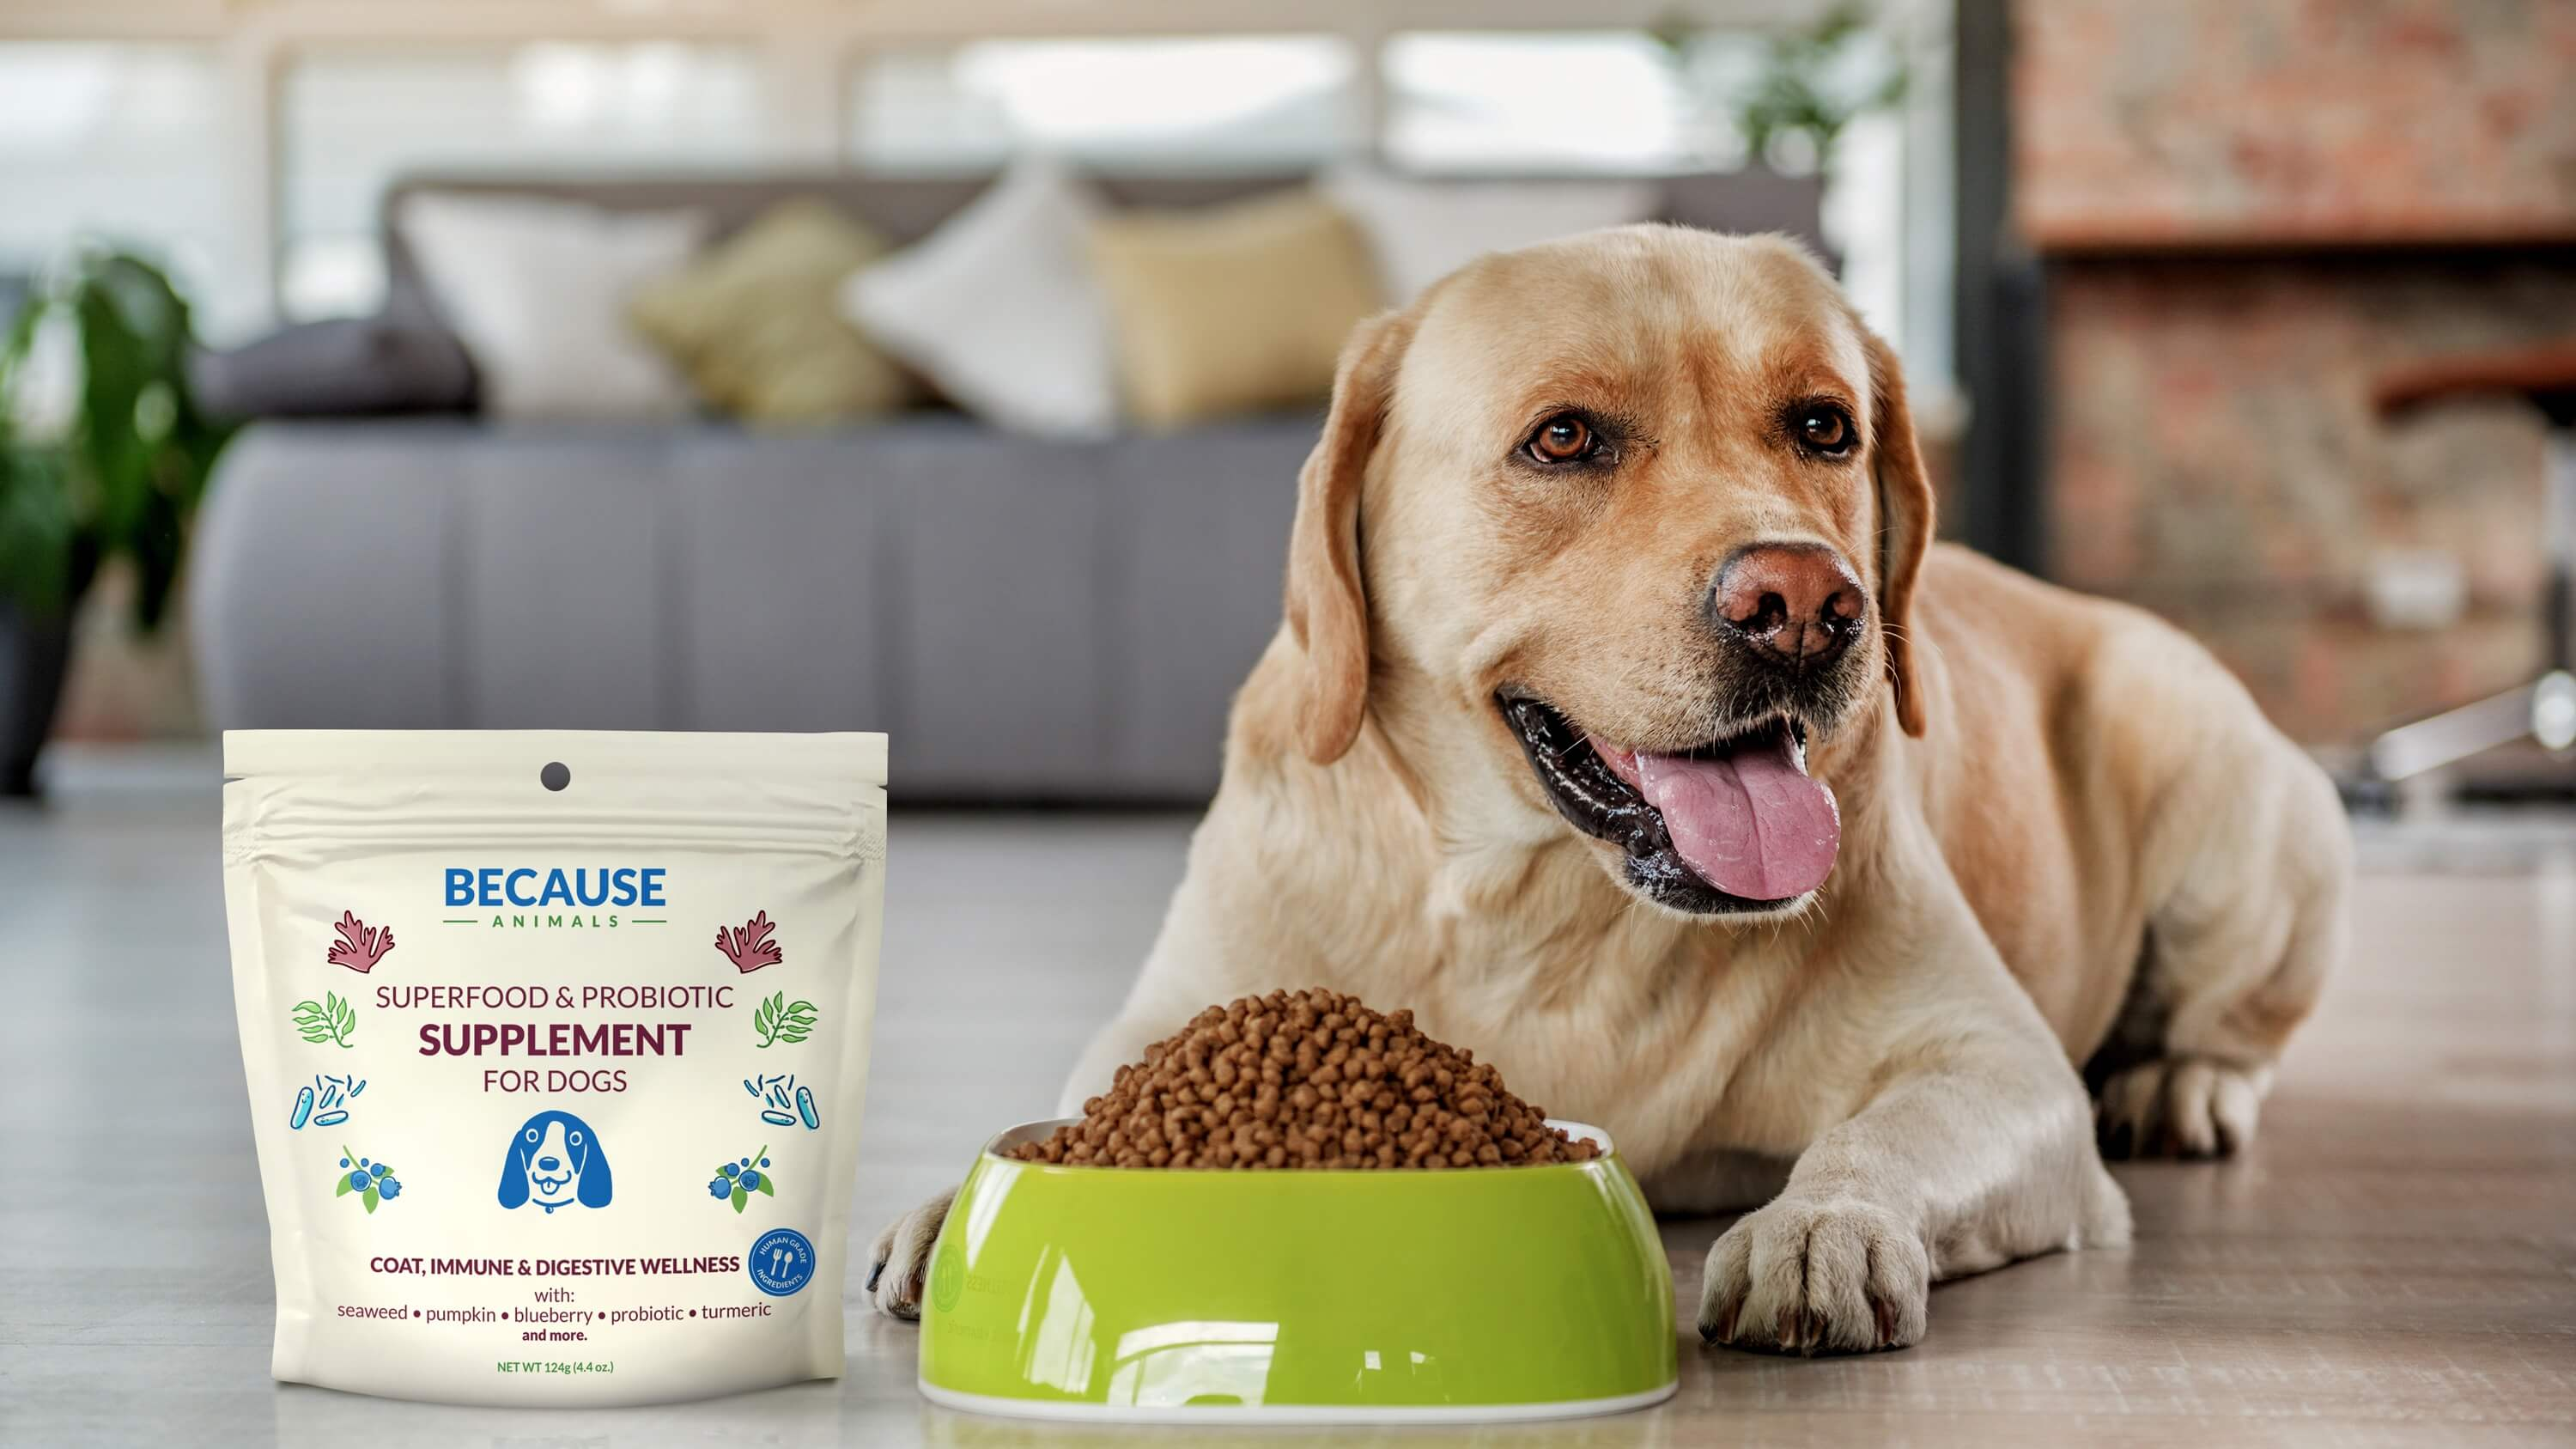 What the Pet Food Industry Doesn't Want You to Know